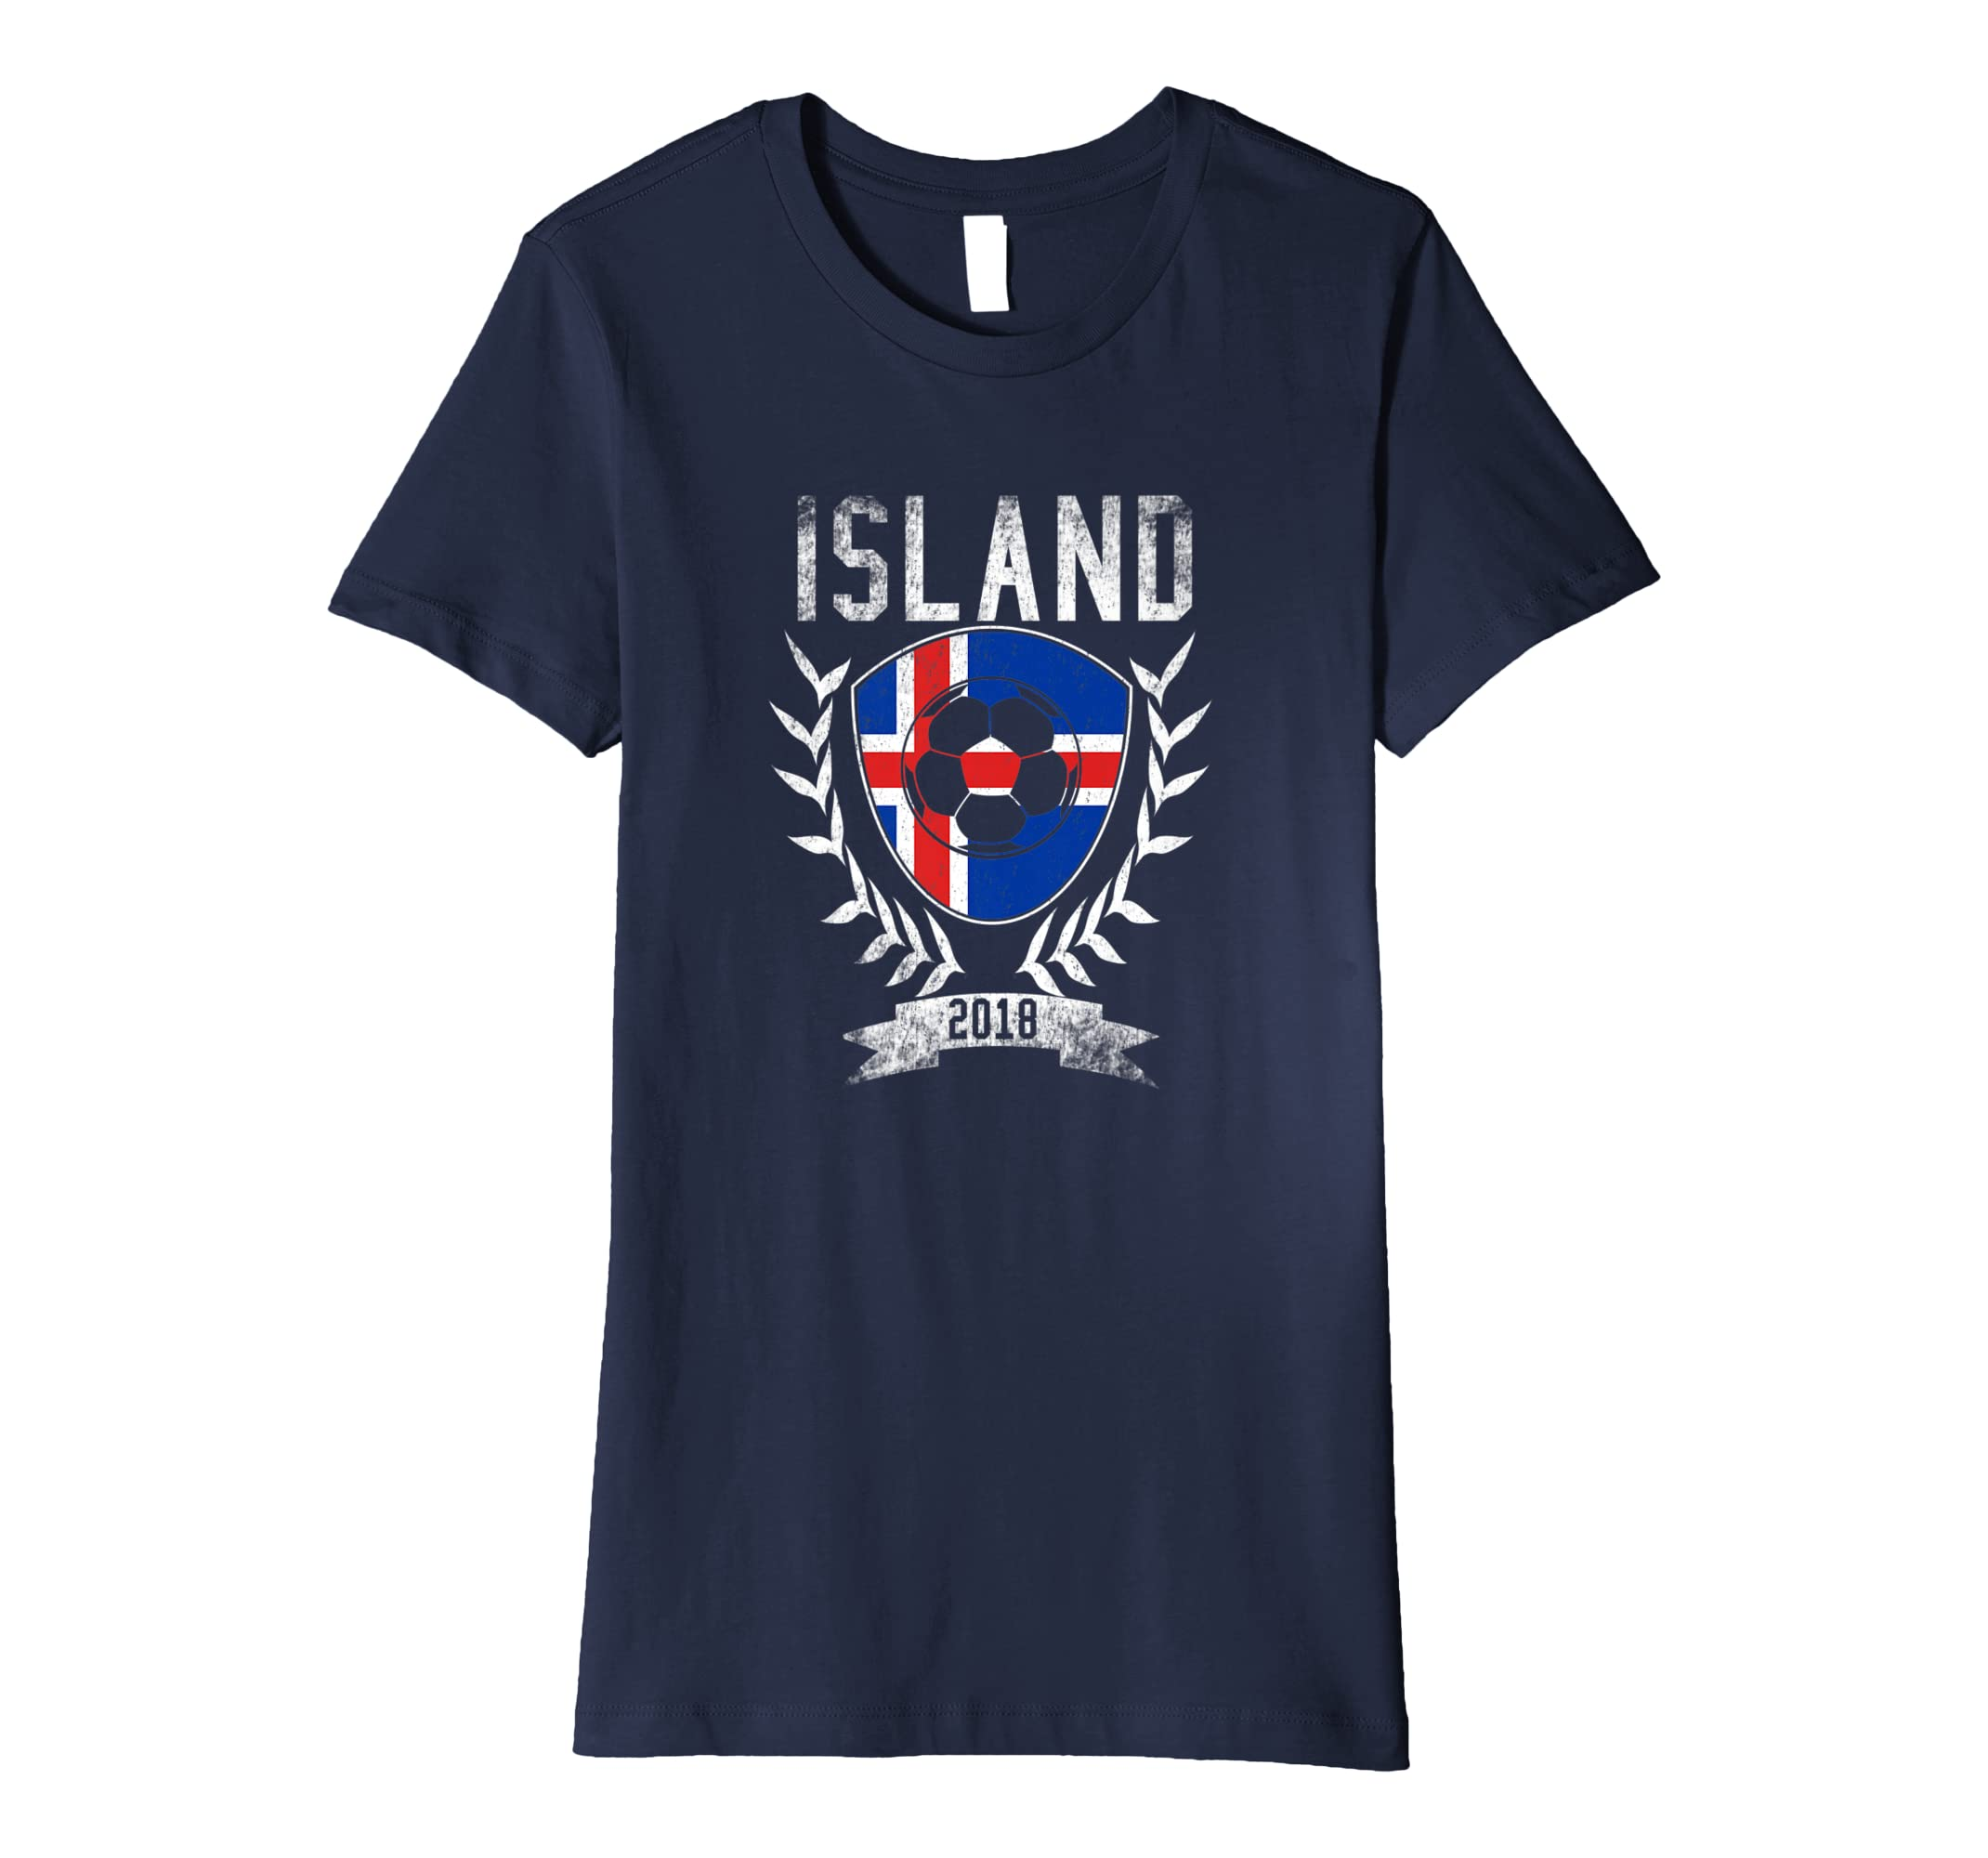 5d1874b8a97 Amazon.com  Icelandic Football Cup 2018 T-Shirt - Iceland Soccer Jersey   Clothing